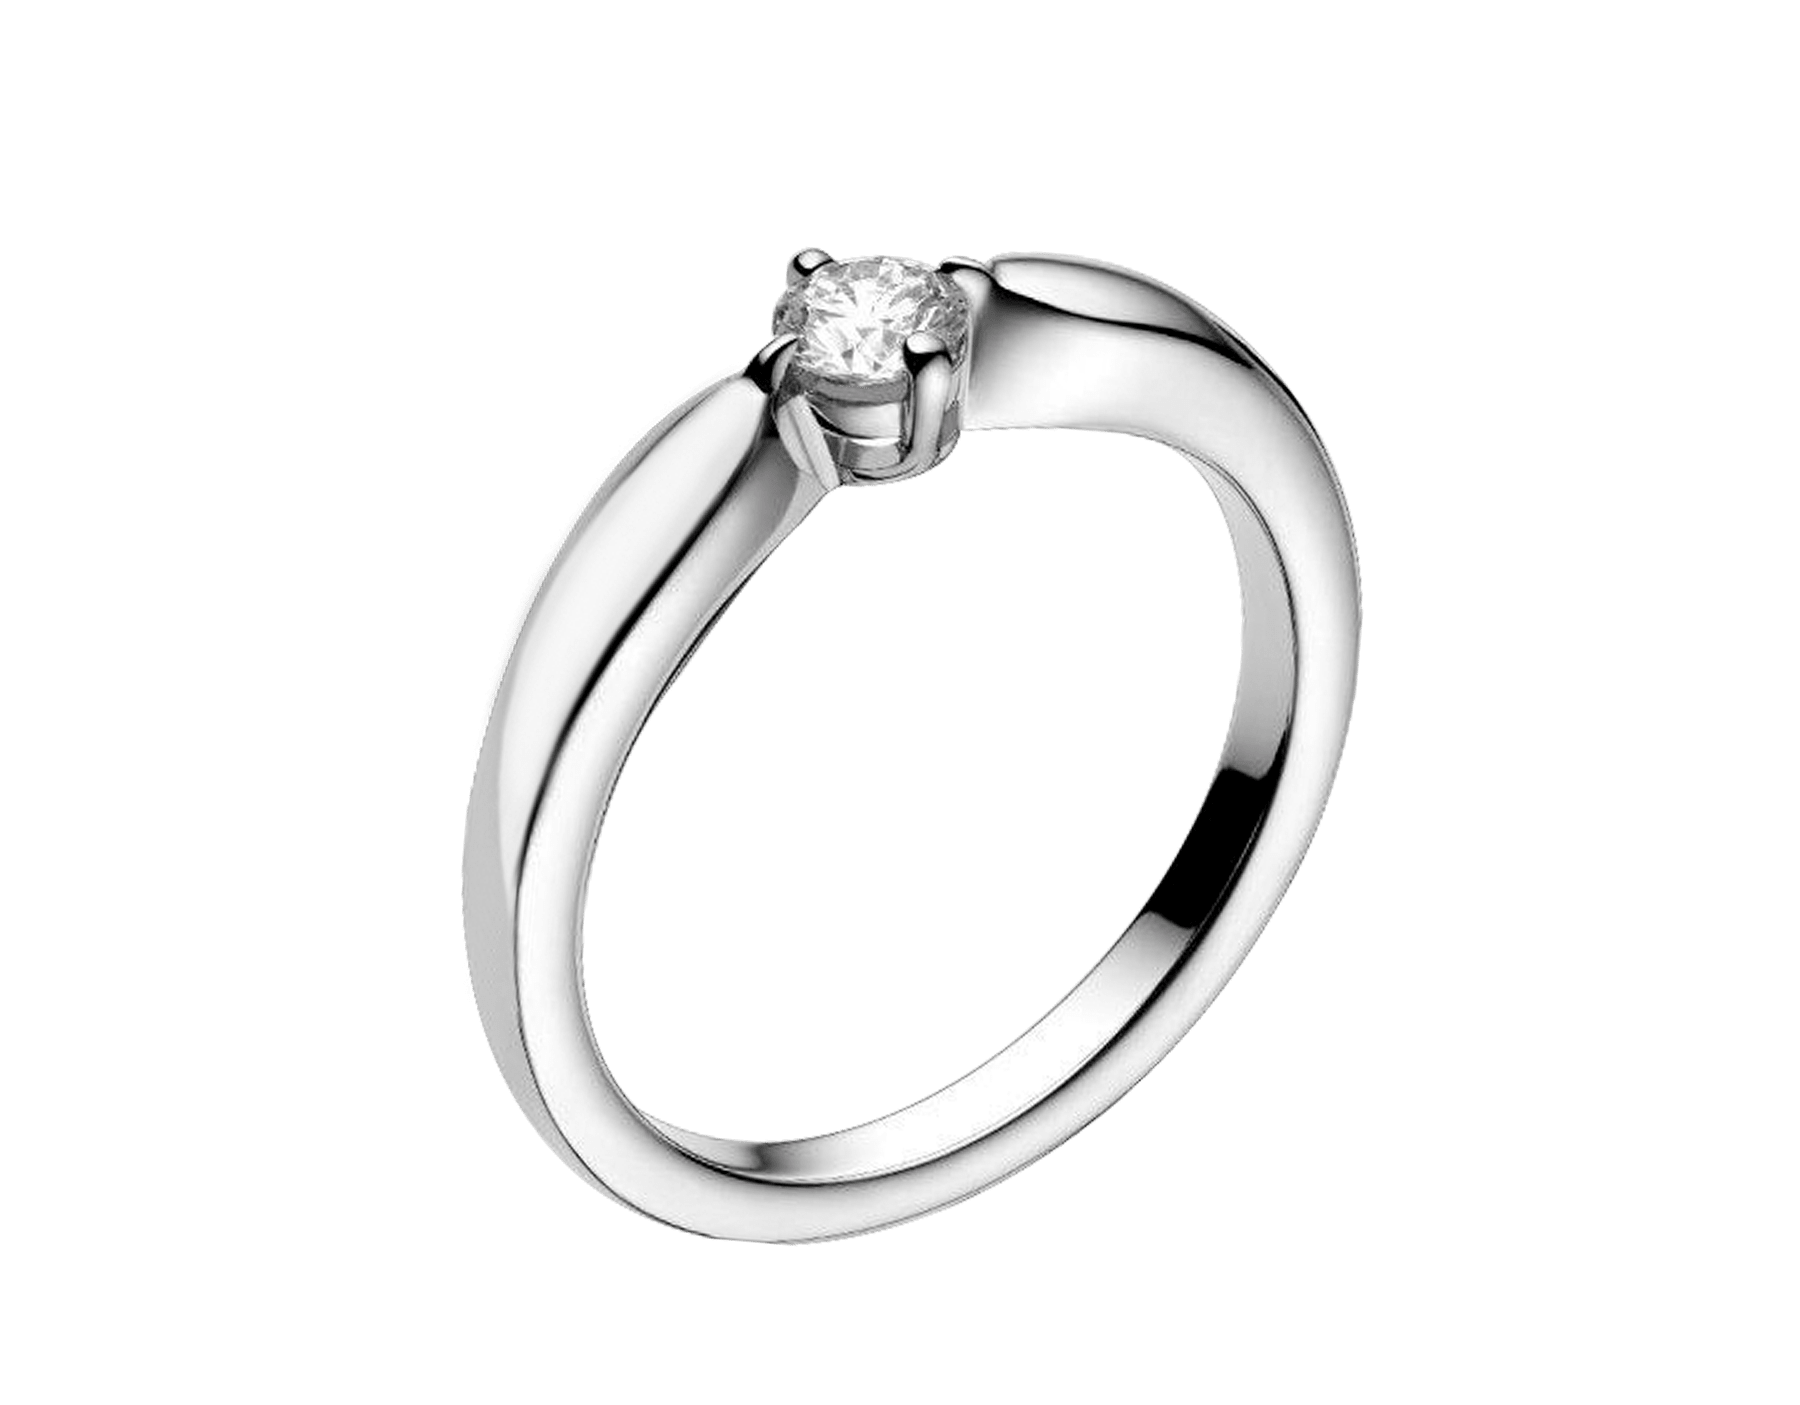 Dedicata a Venezia: Torcello solitaire ring in platinum with round brilliant-cut diamond. Available from 0.30 ct. Its curved setting perfectly embraces the diamond. The name comes from the Venetian island of Torcello. 345192 image 1